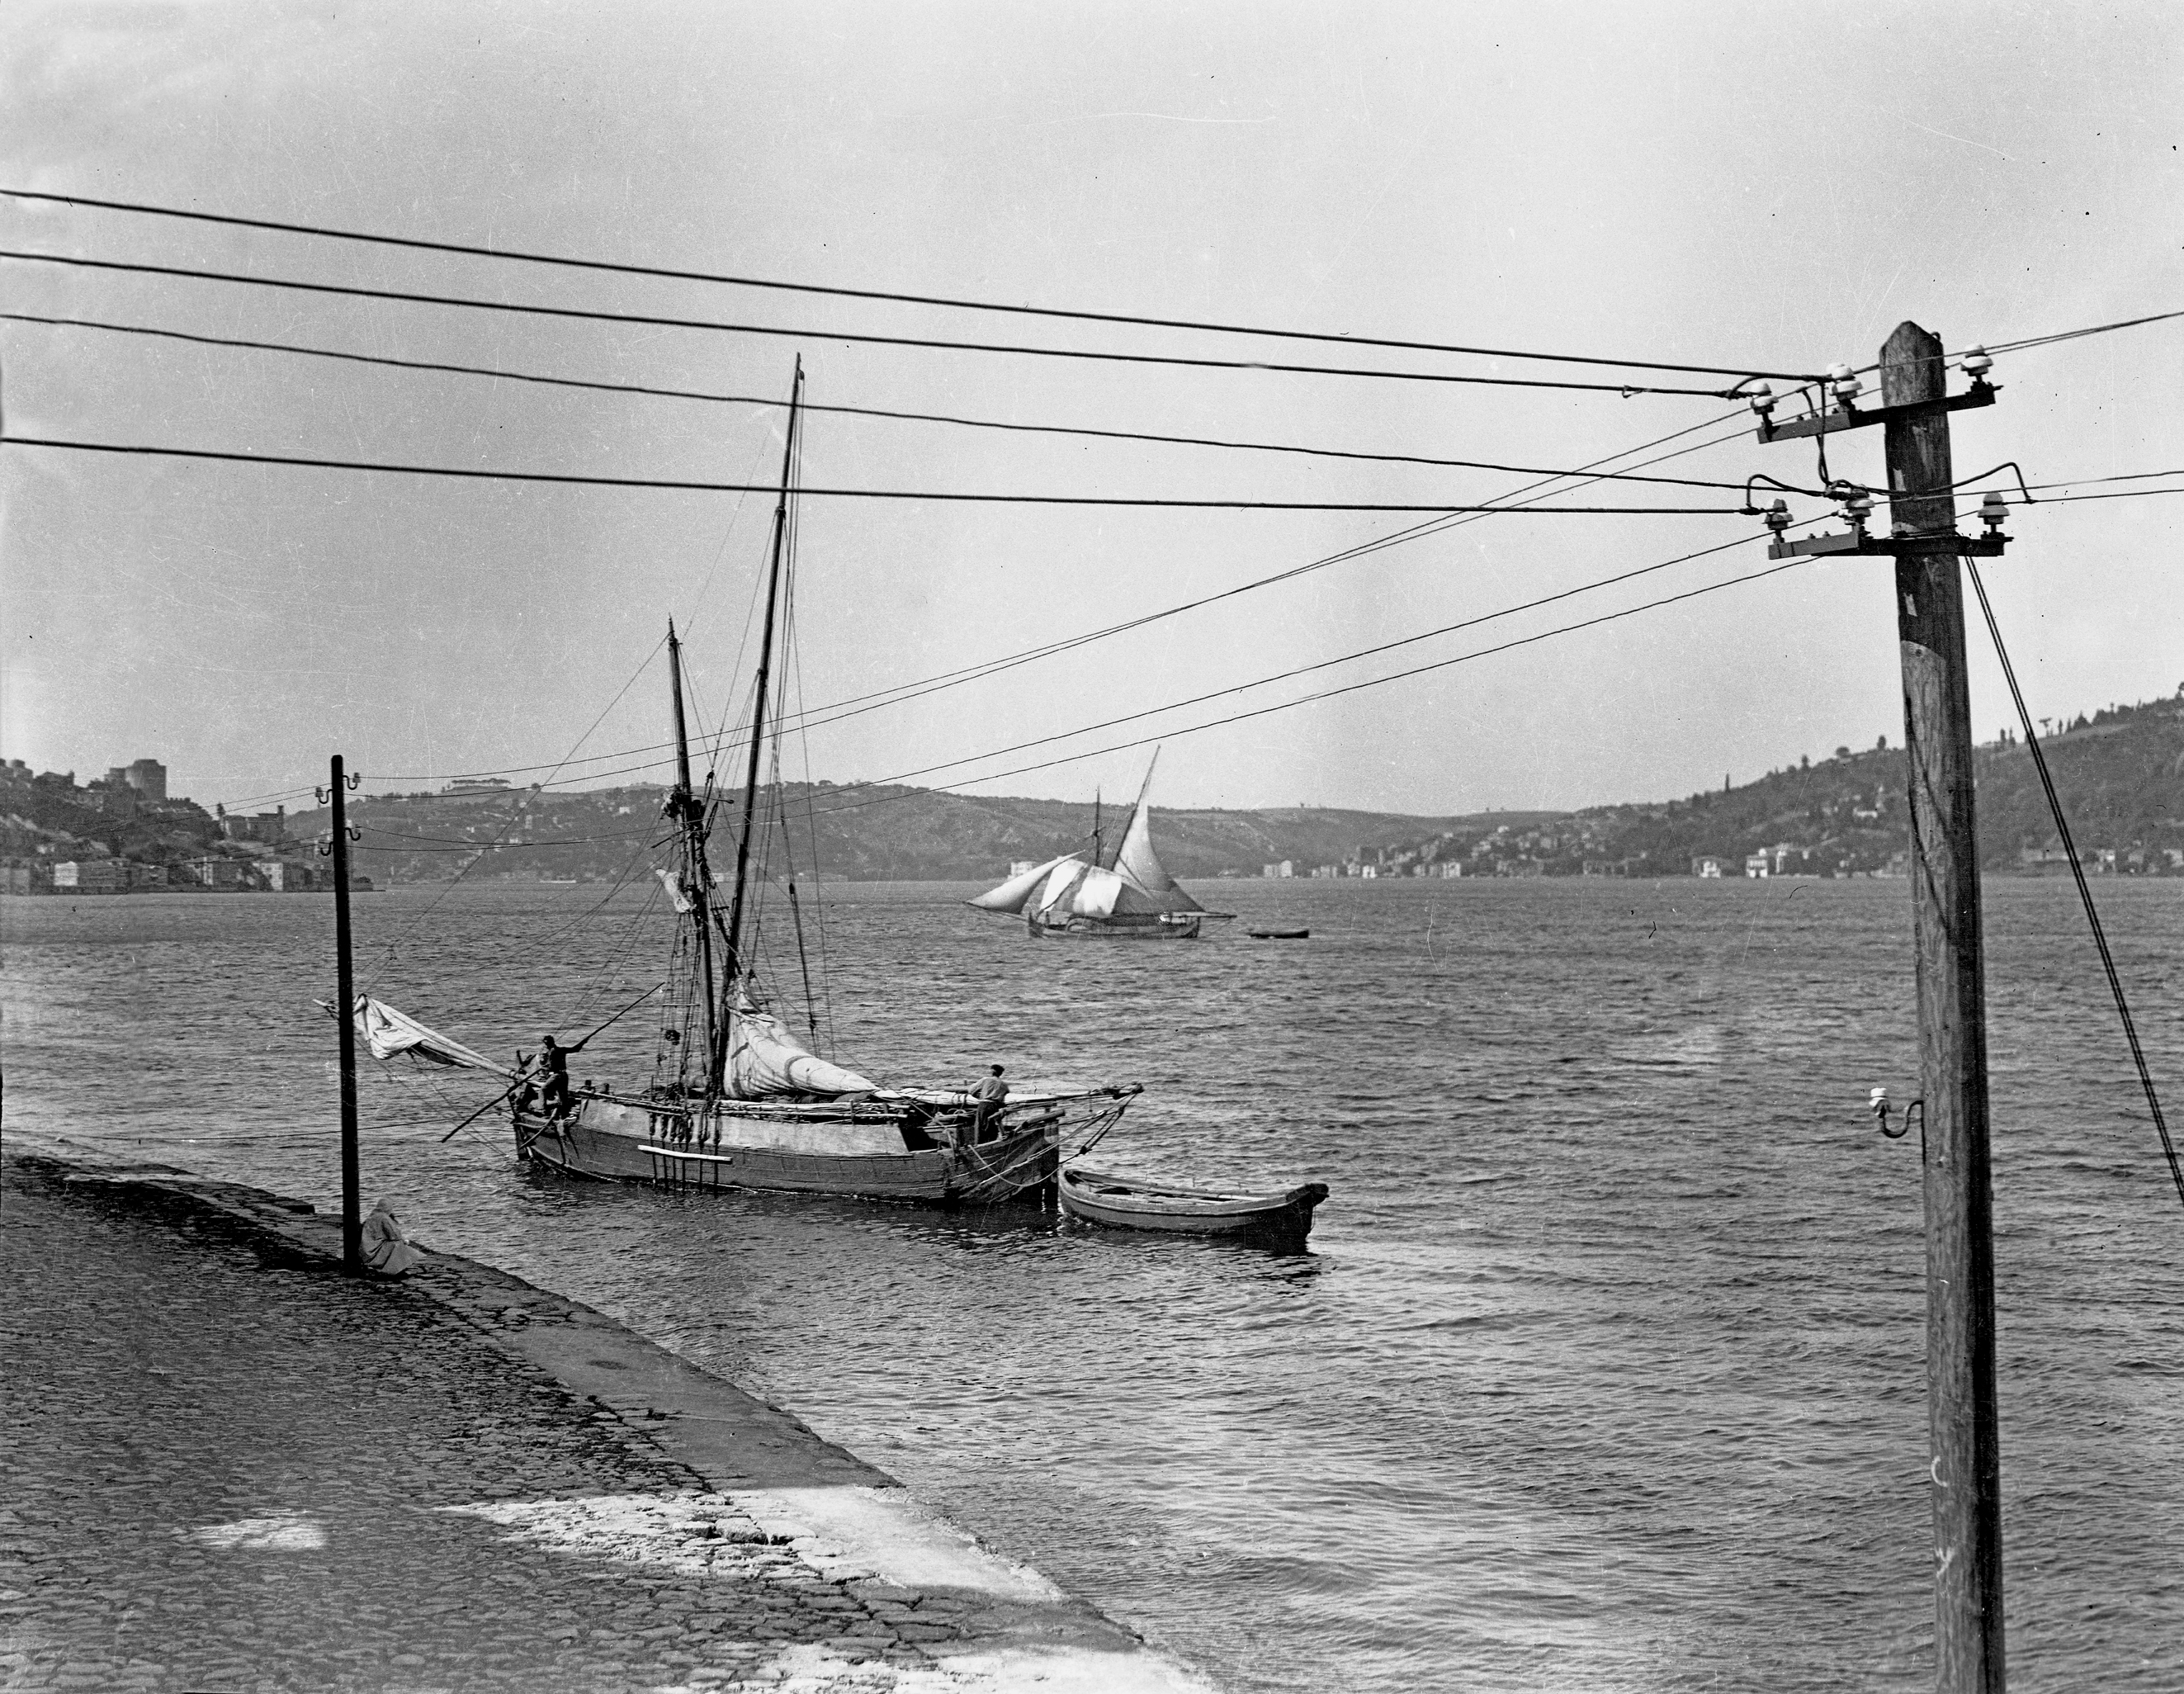 Sailing boats on the Bosphorus near Akıntıburnu, © Cengiz Kahraman